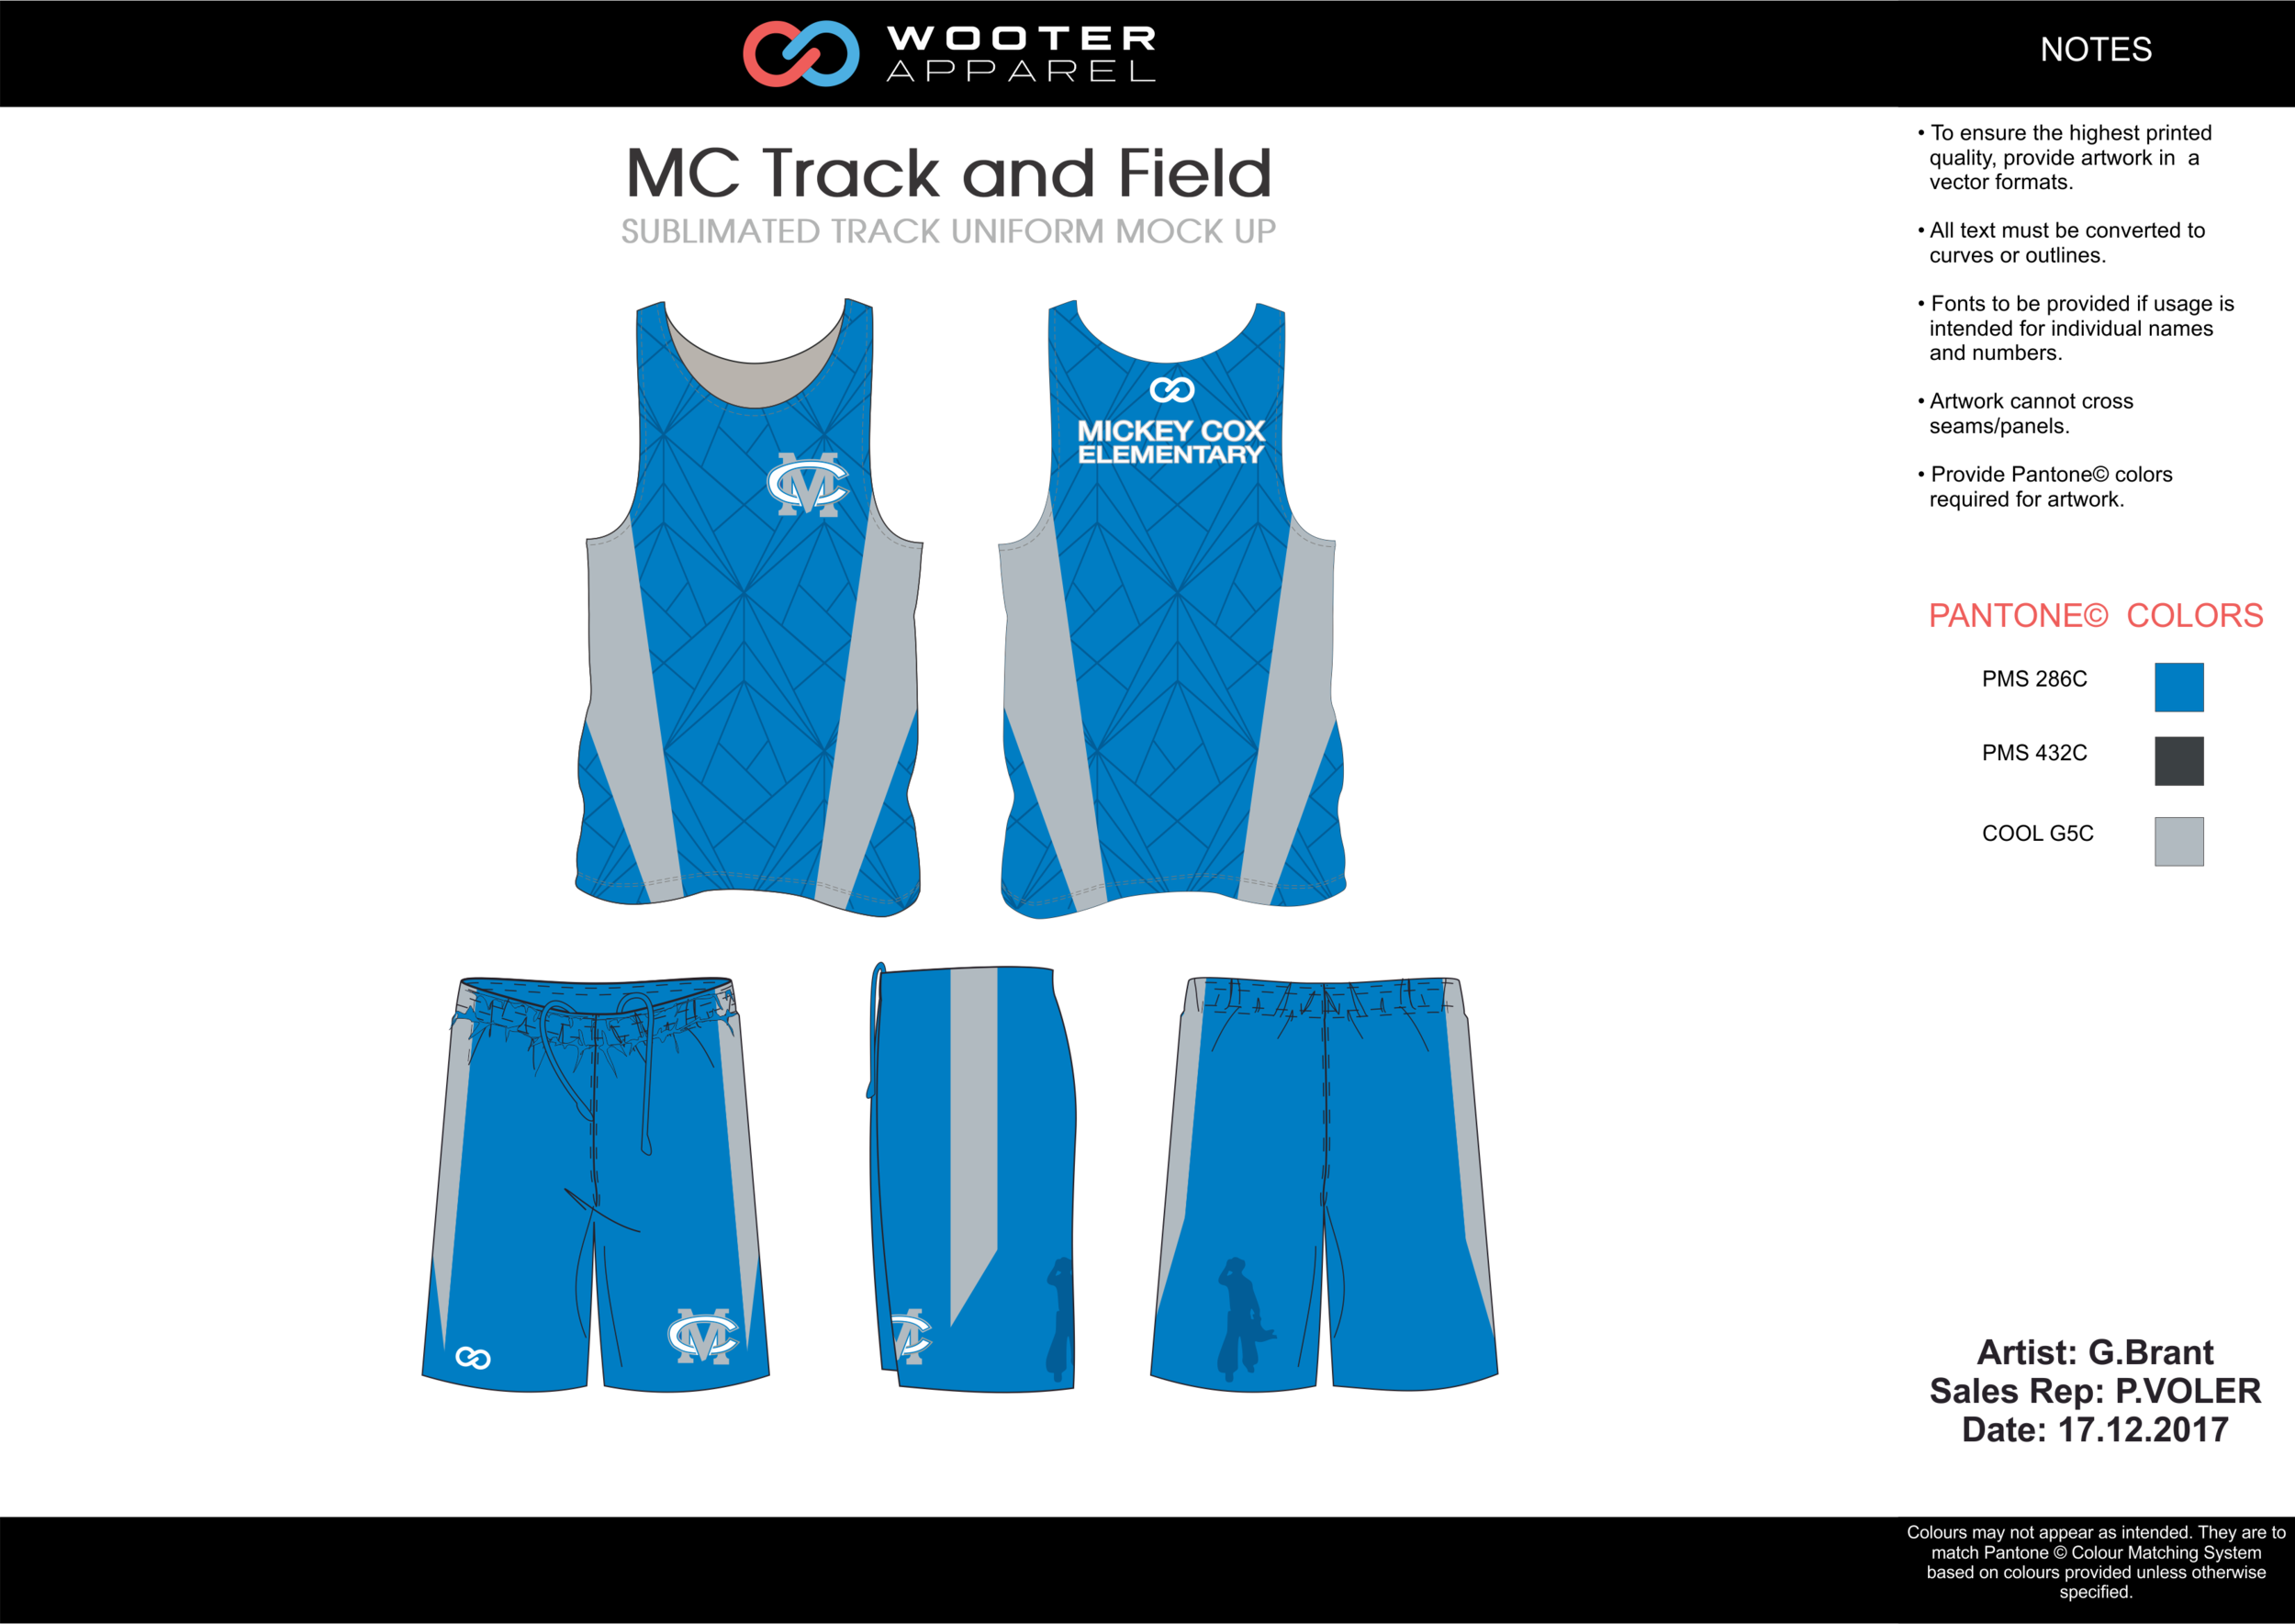 MC Track and Field Skyblue Black Gray and White Basketball Track Uniforms Jerseys and Shorts